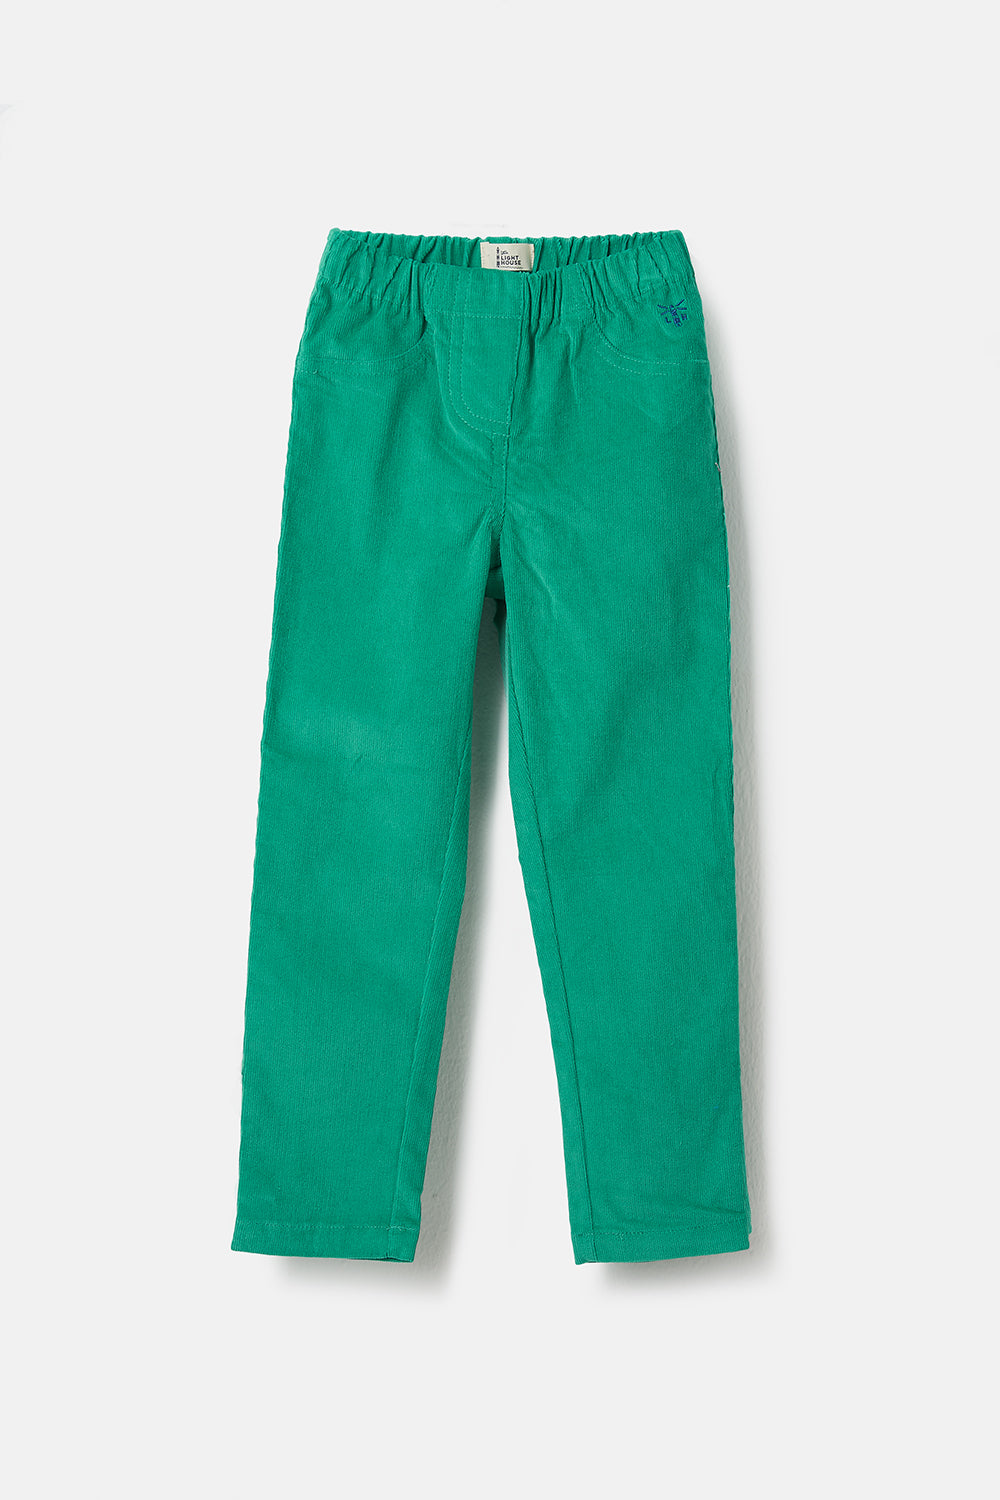 Izzy Trousers - Green, Girl's Cord Leggings | Lighthouse